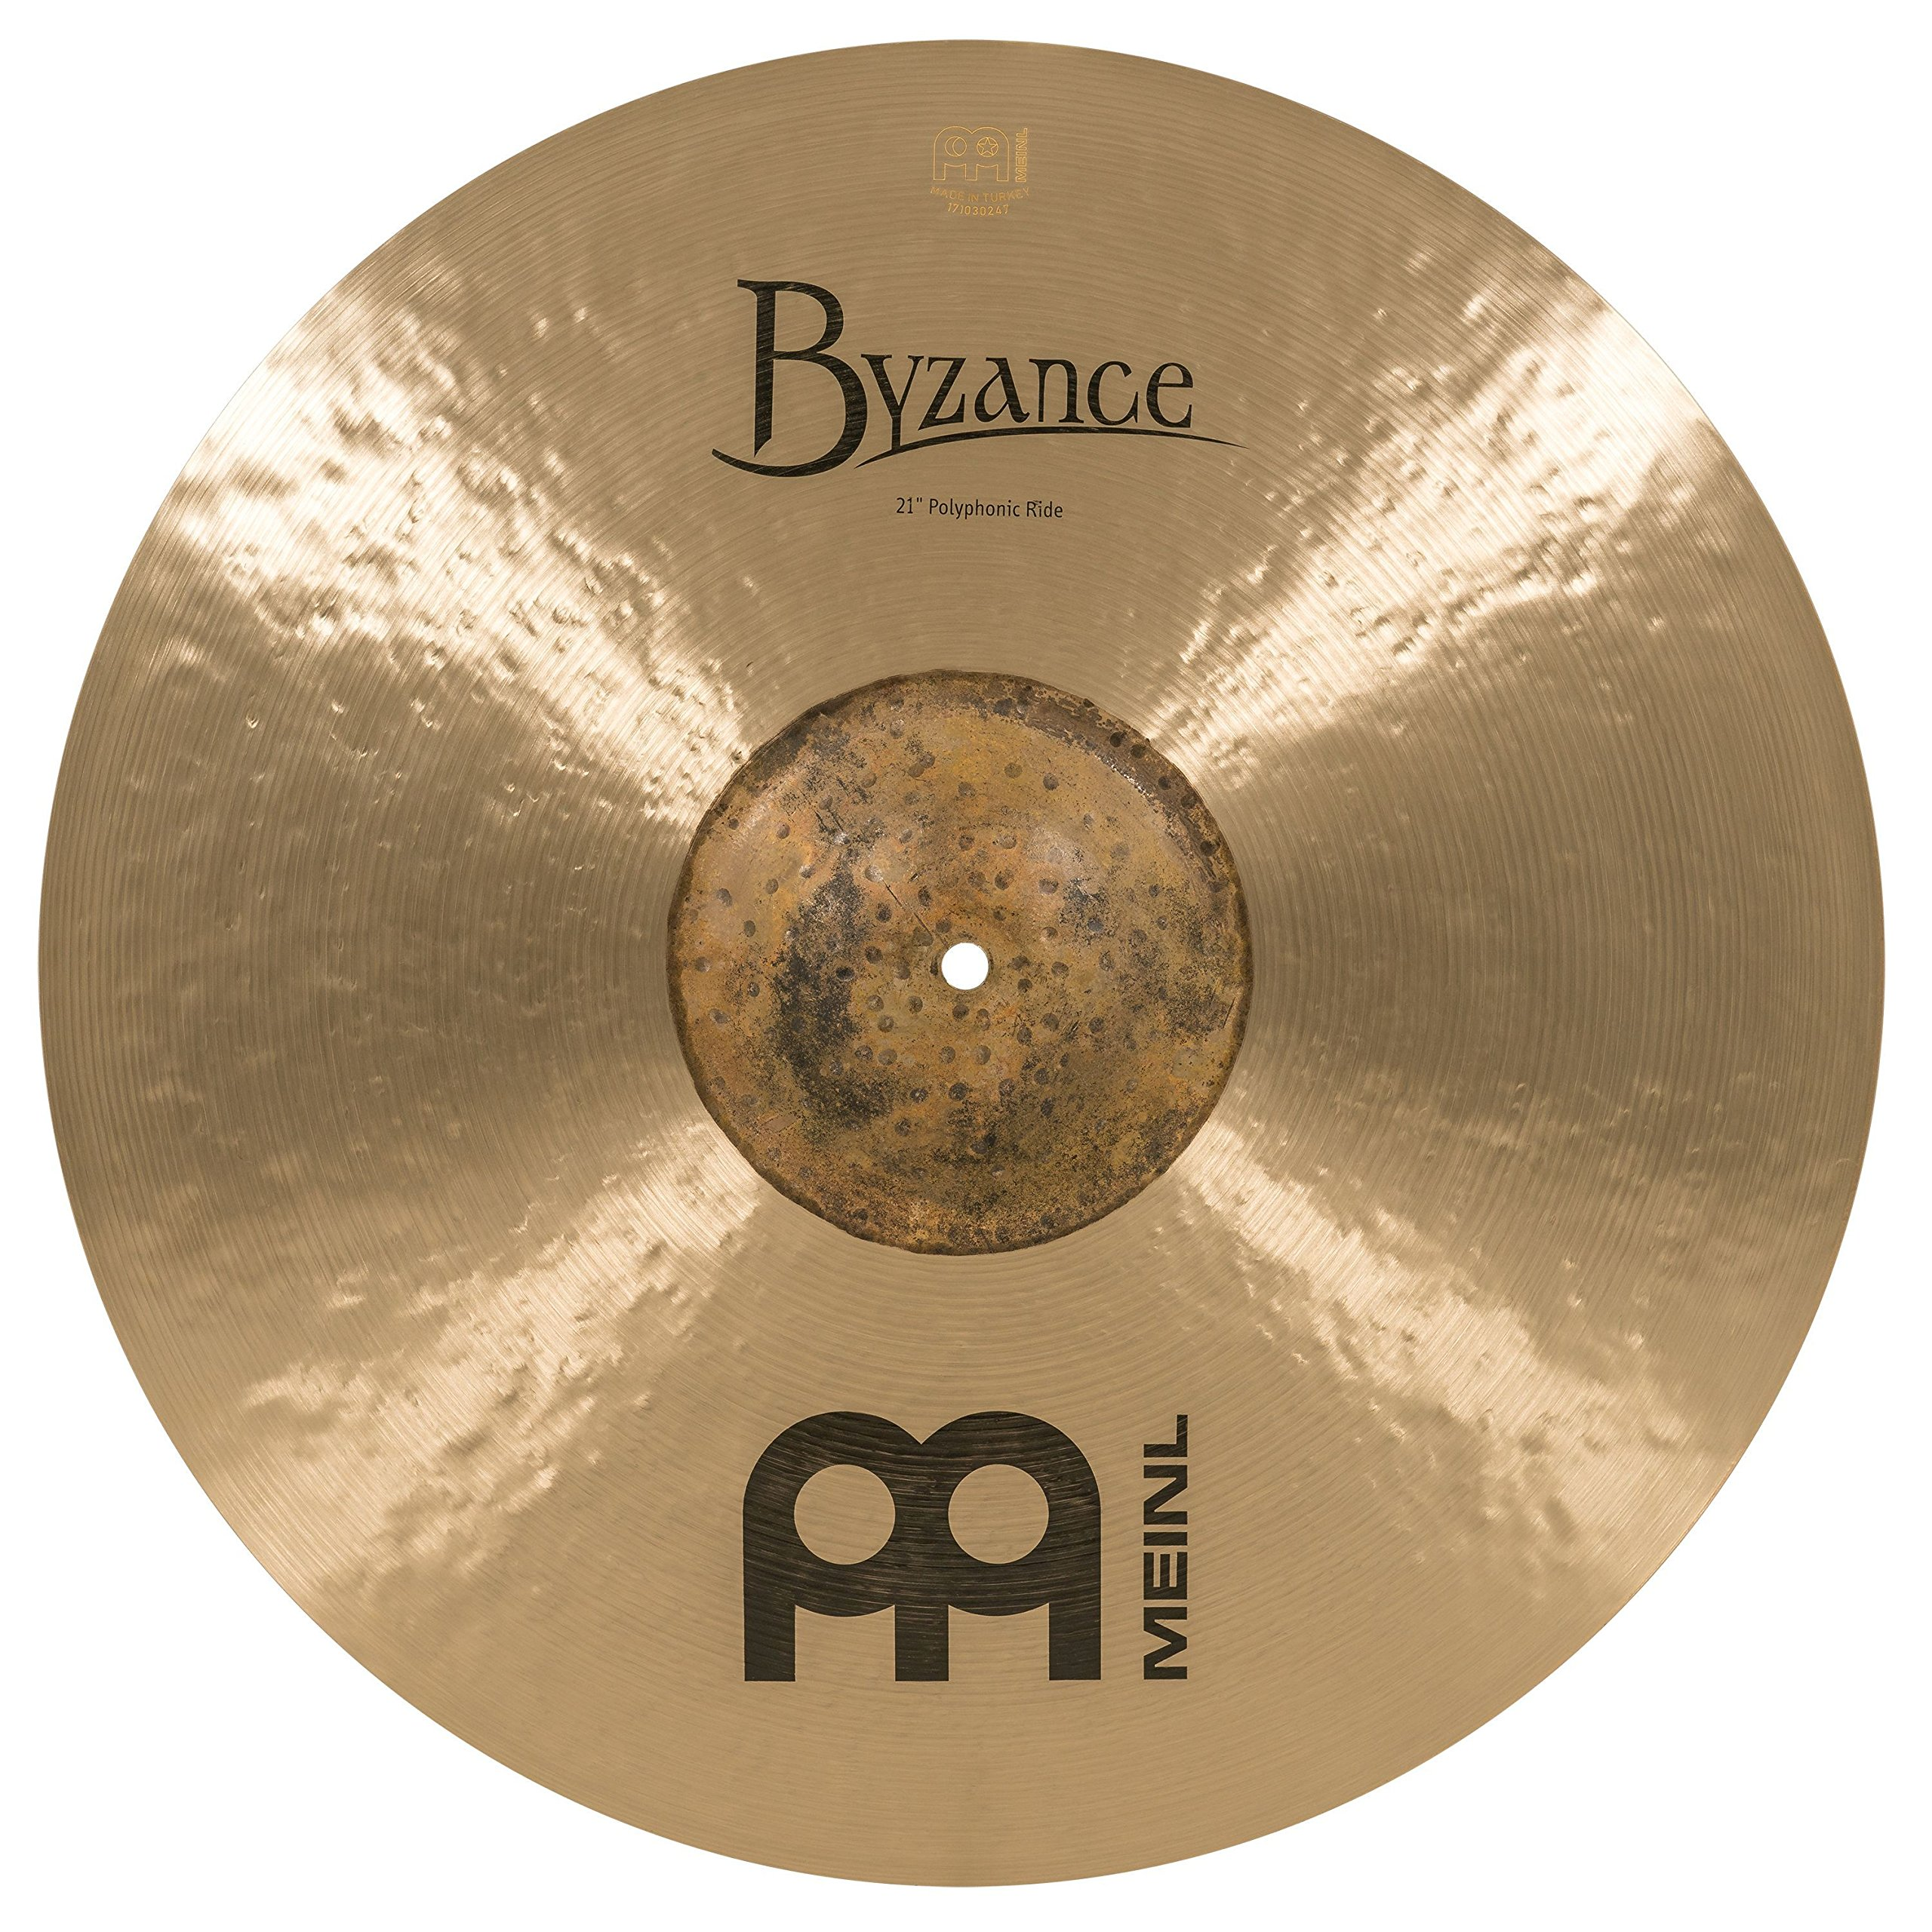 Meinl Cymbals Byzance Traditional Polyphonic Ride Cymbal (B21POR) by Meinl Cymbals